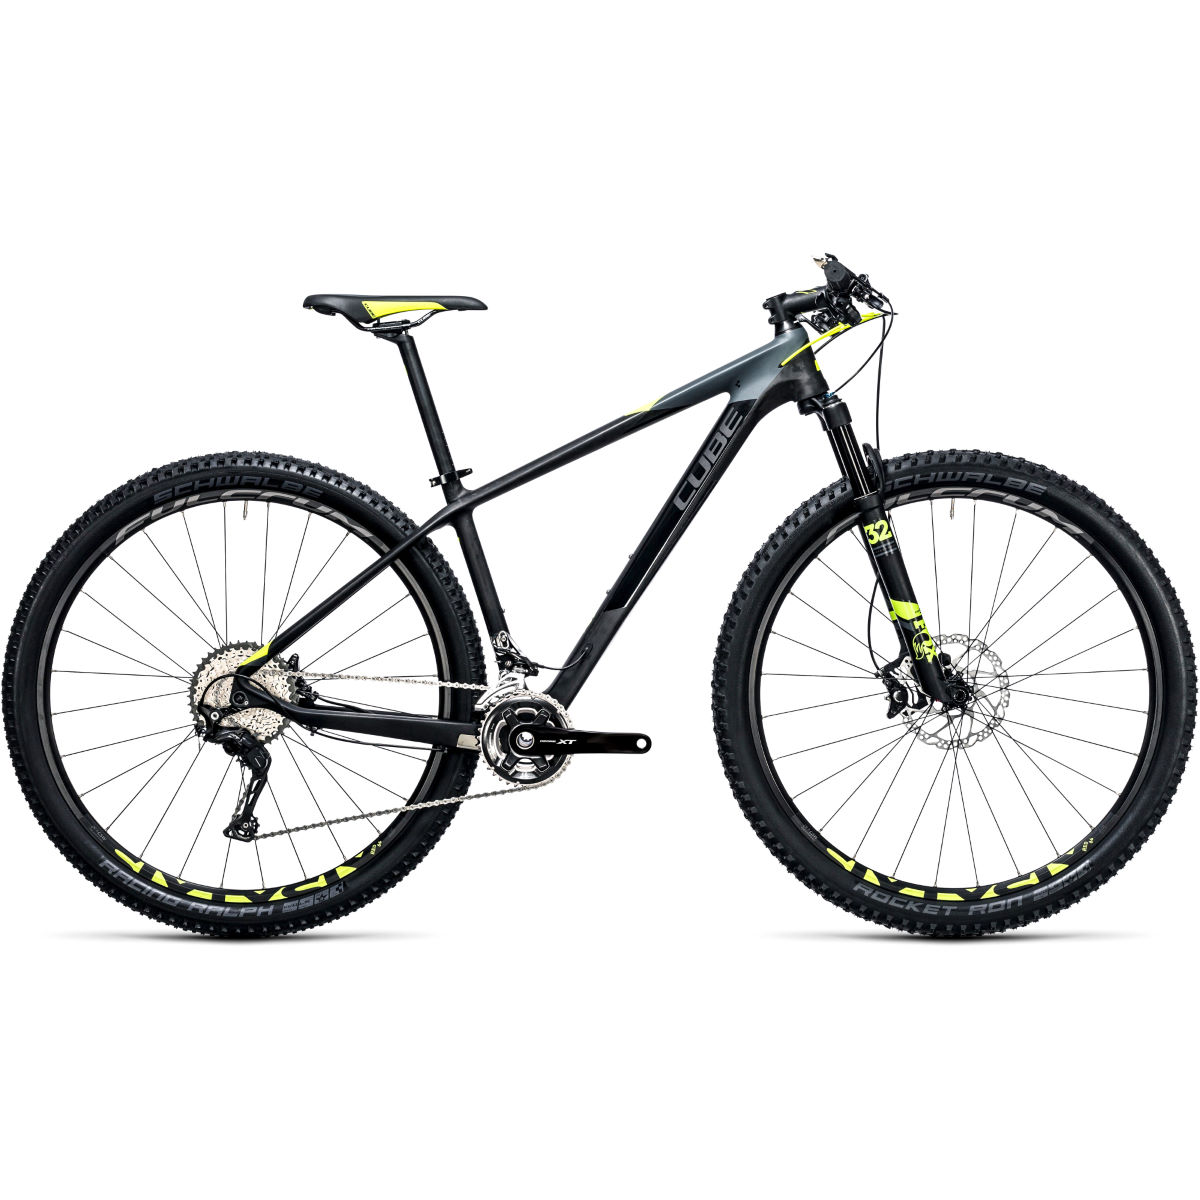 VTT semi-rigide Cube Reaction GTC SL 29 pouces - 23'' Stock Bike